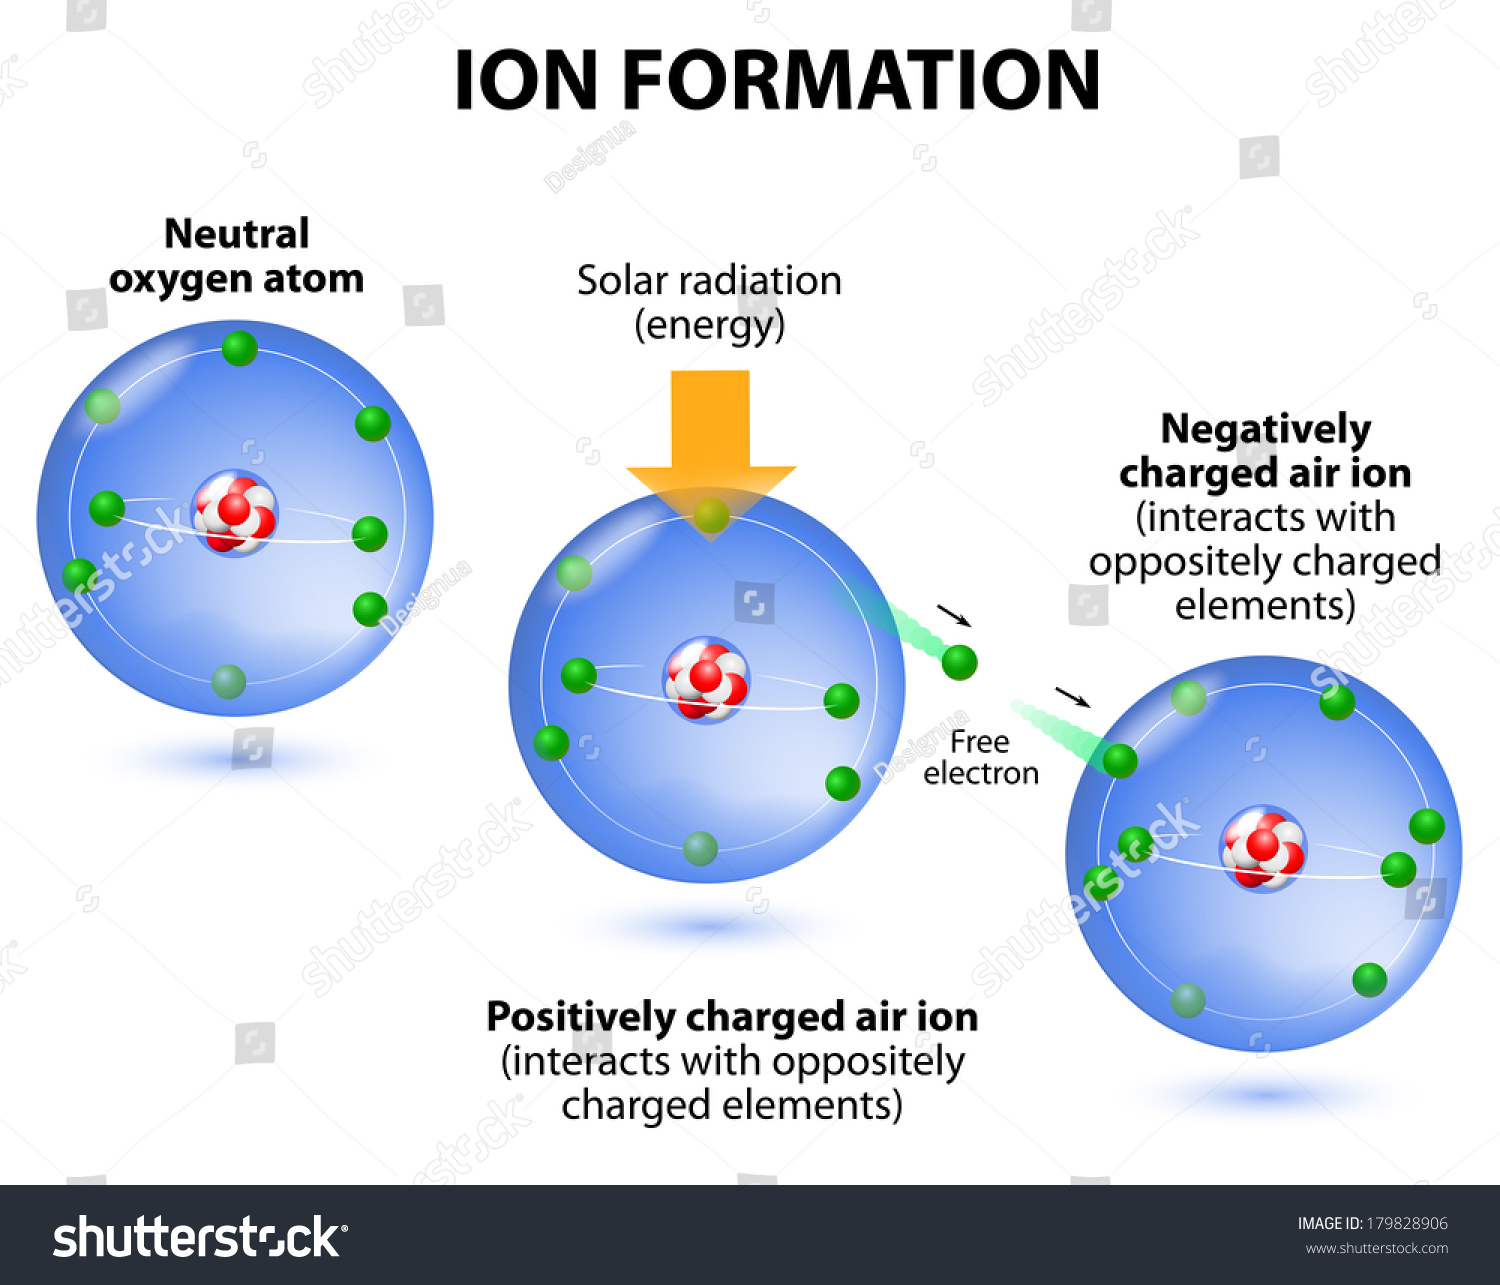 Air Ions Formation Diagram Oxygen Atoms Stock Illustration 179828906 Atomic Structure